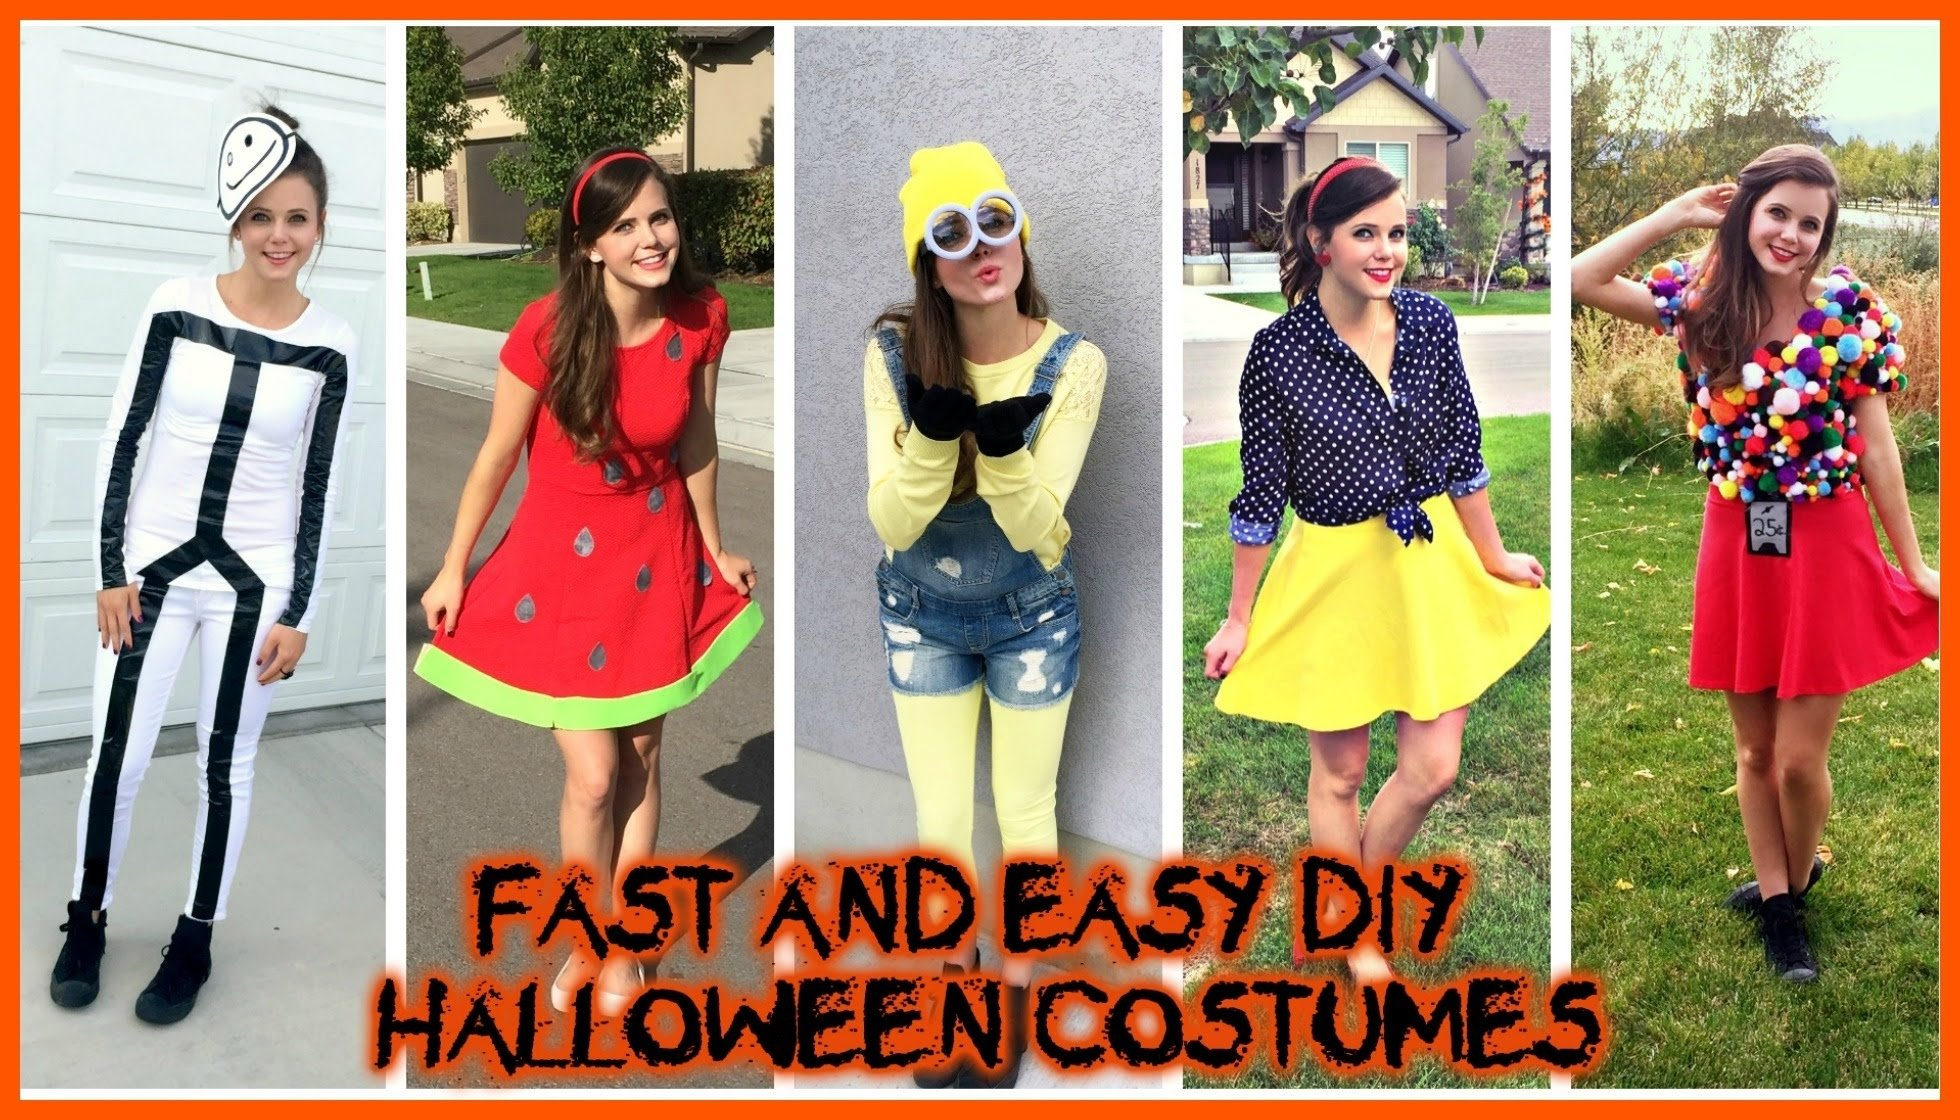 10 attractive last minute homemade halloween costume ideas diy halloween costumes super easy cheap last minute